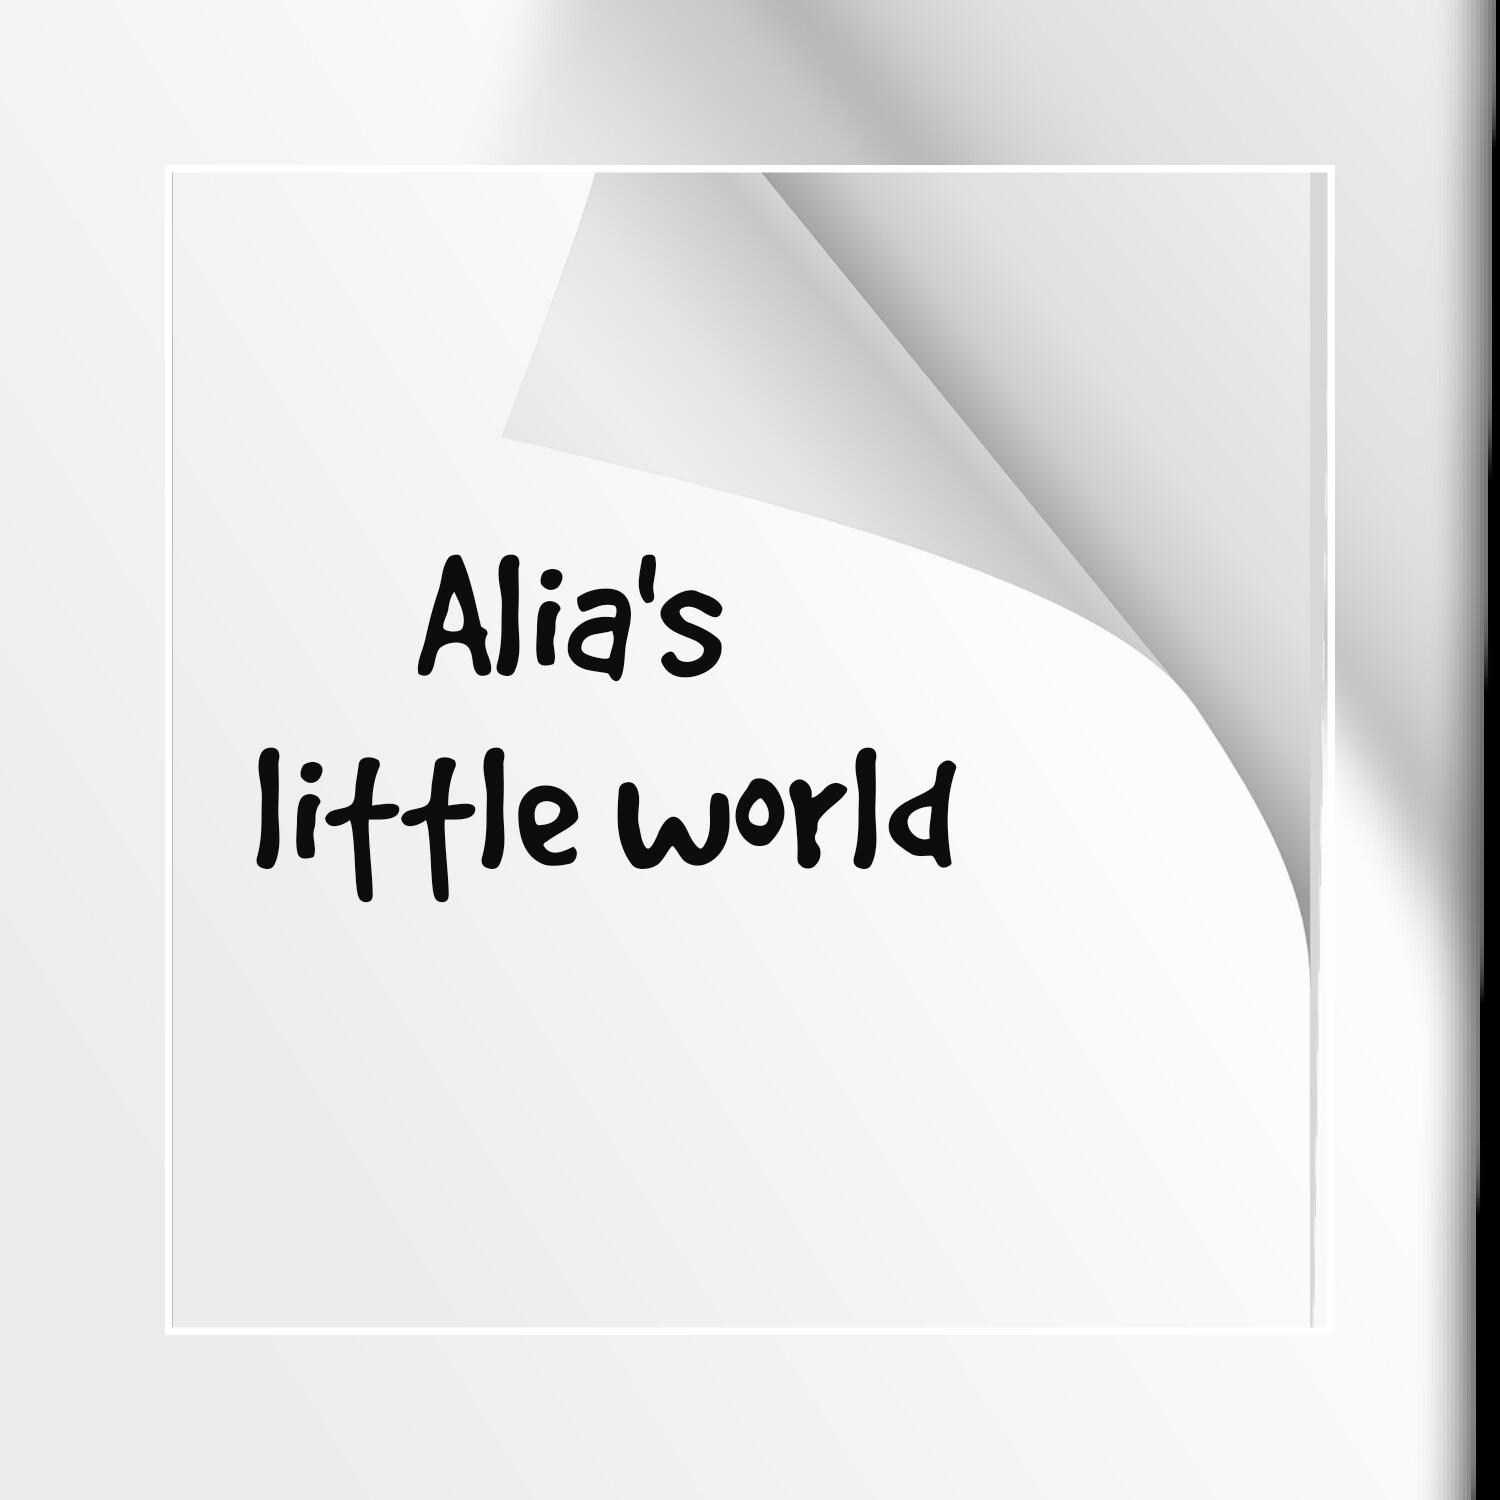 Alia's little world